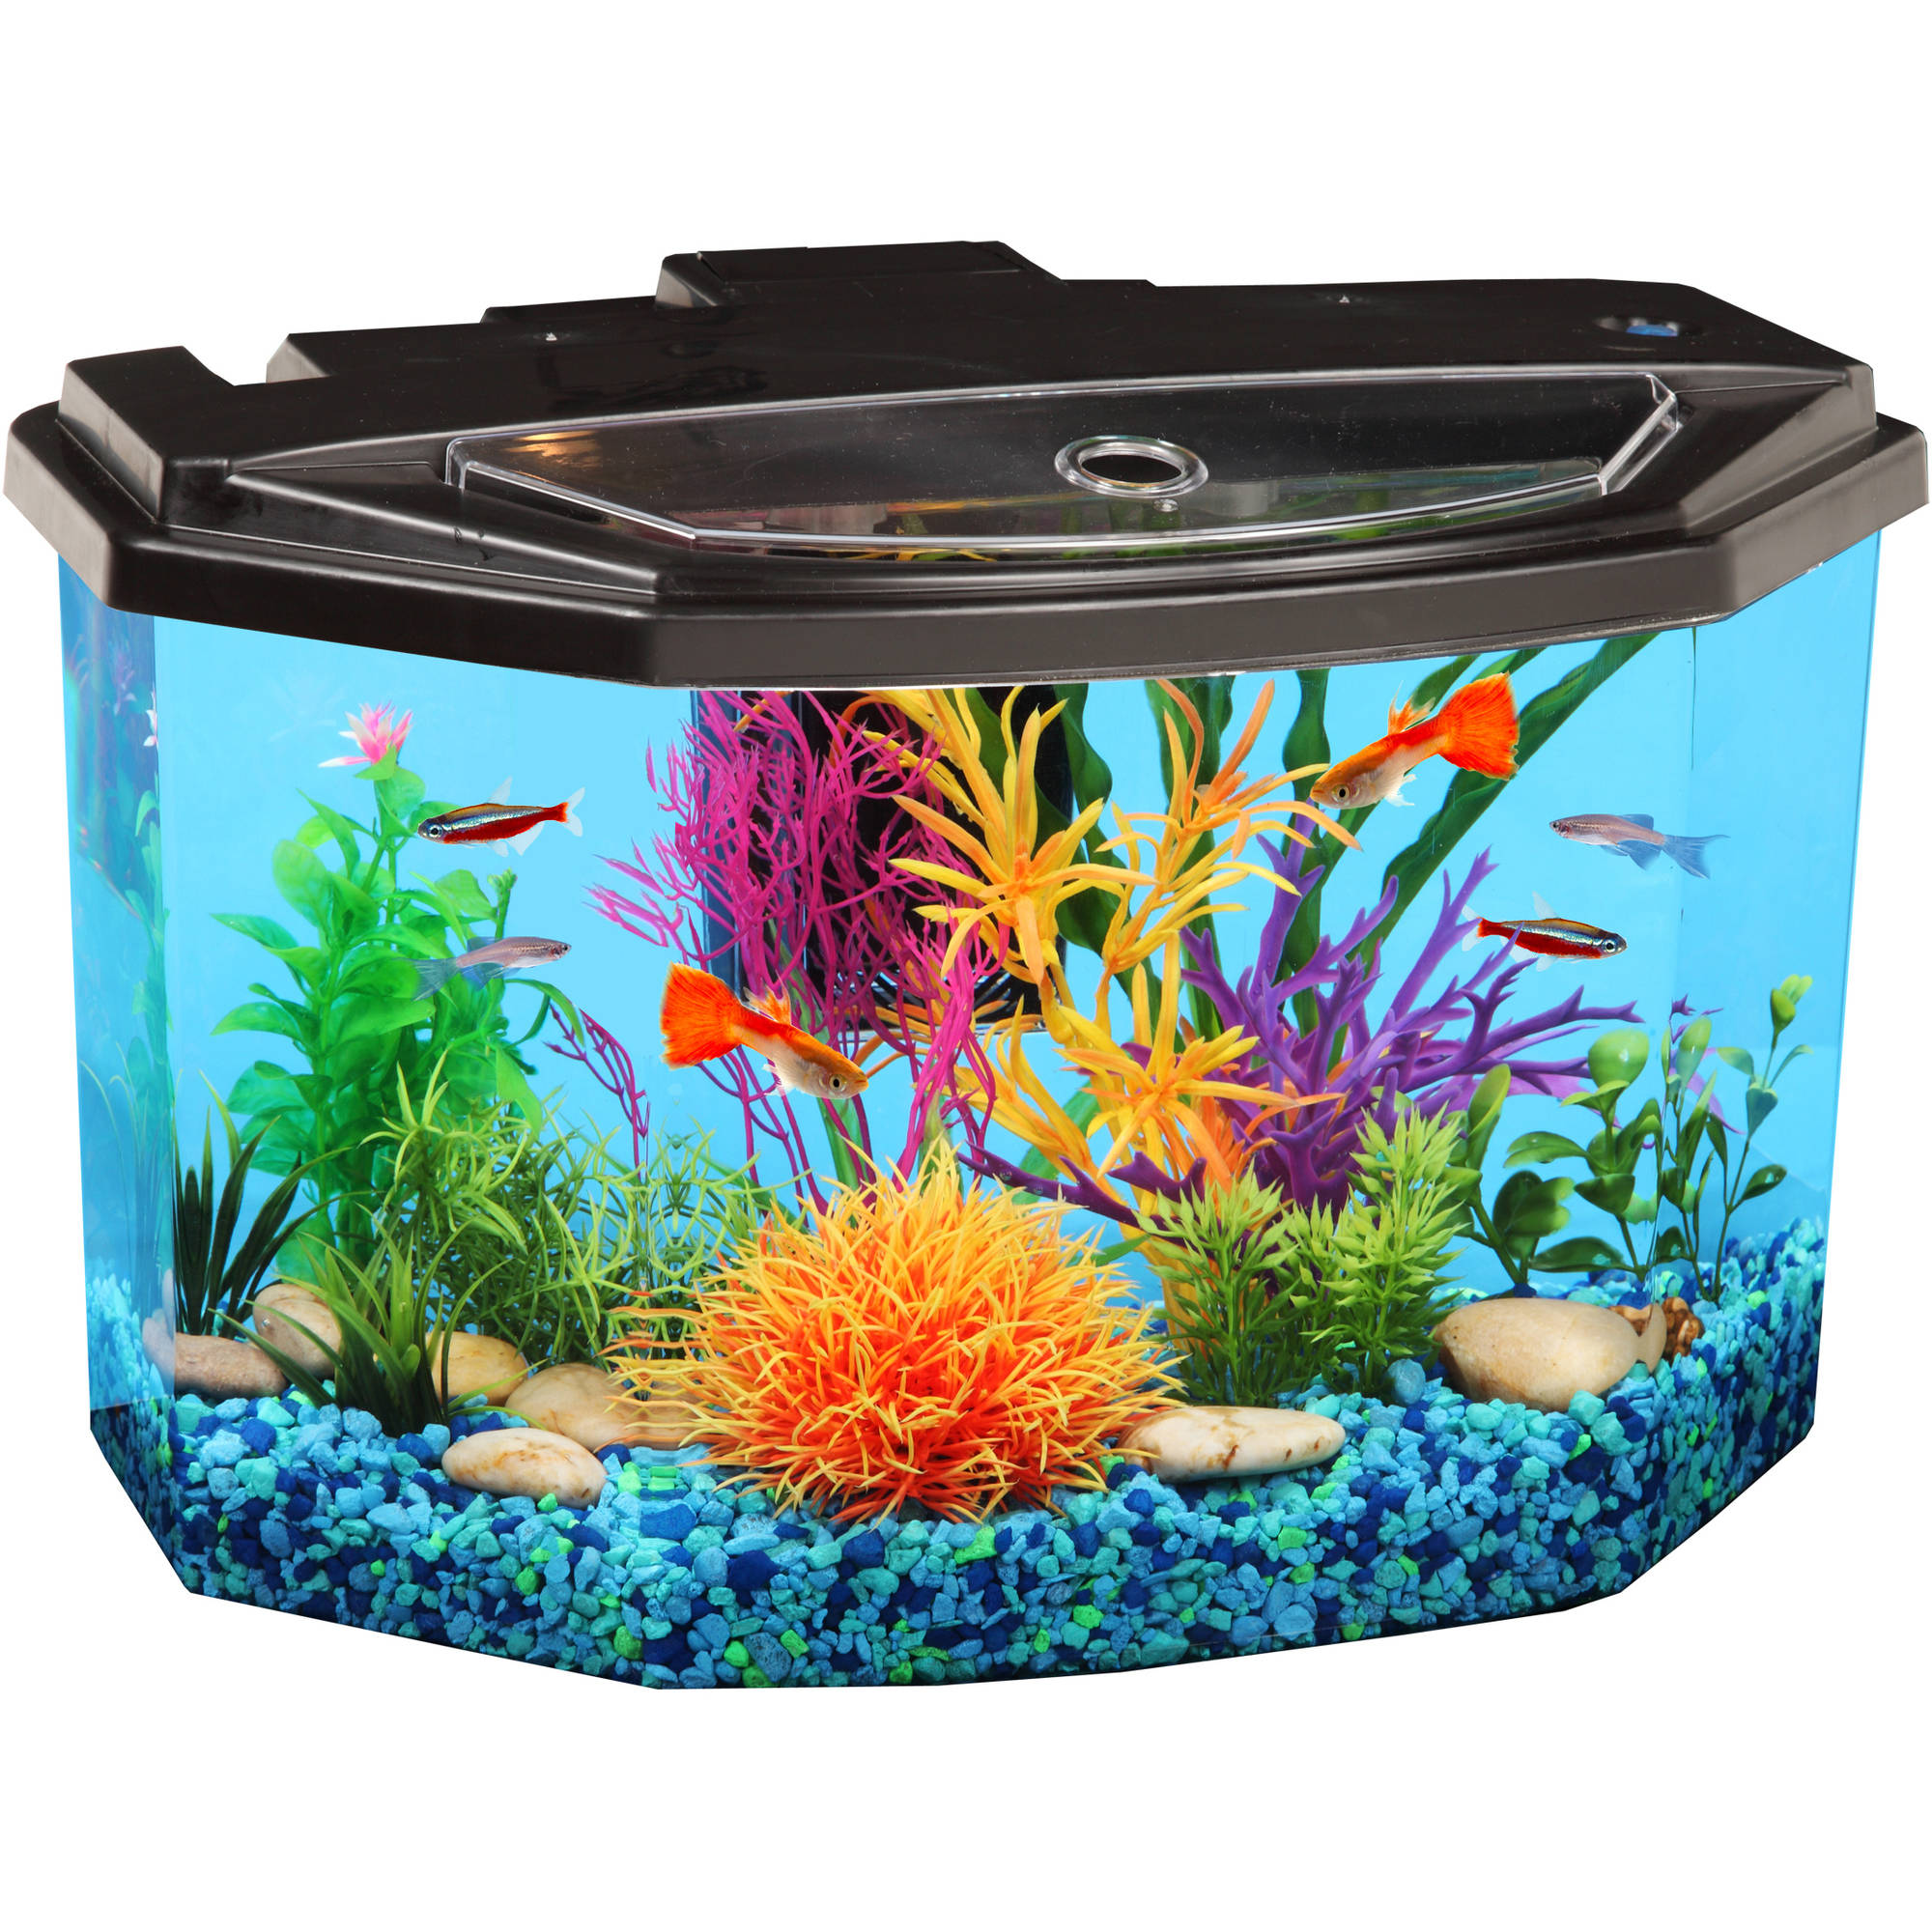 Hawkeye 3-Gallon Semi-Hex Aquarium with LED Lighting and Power Filter